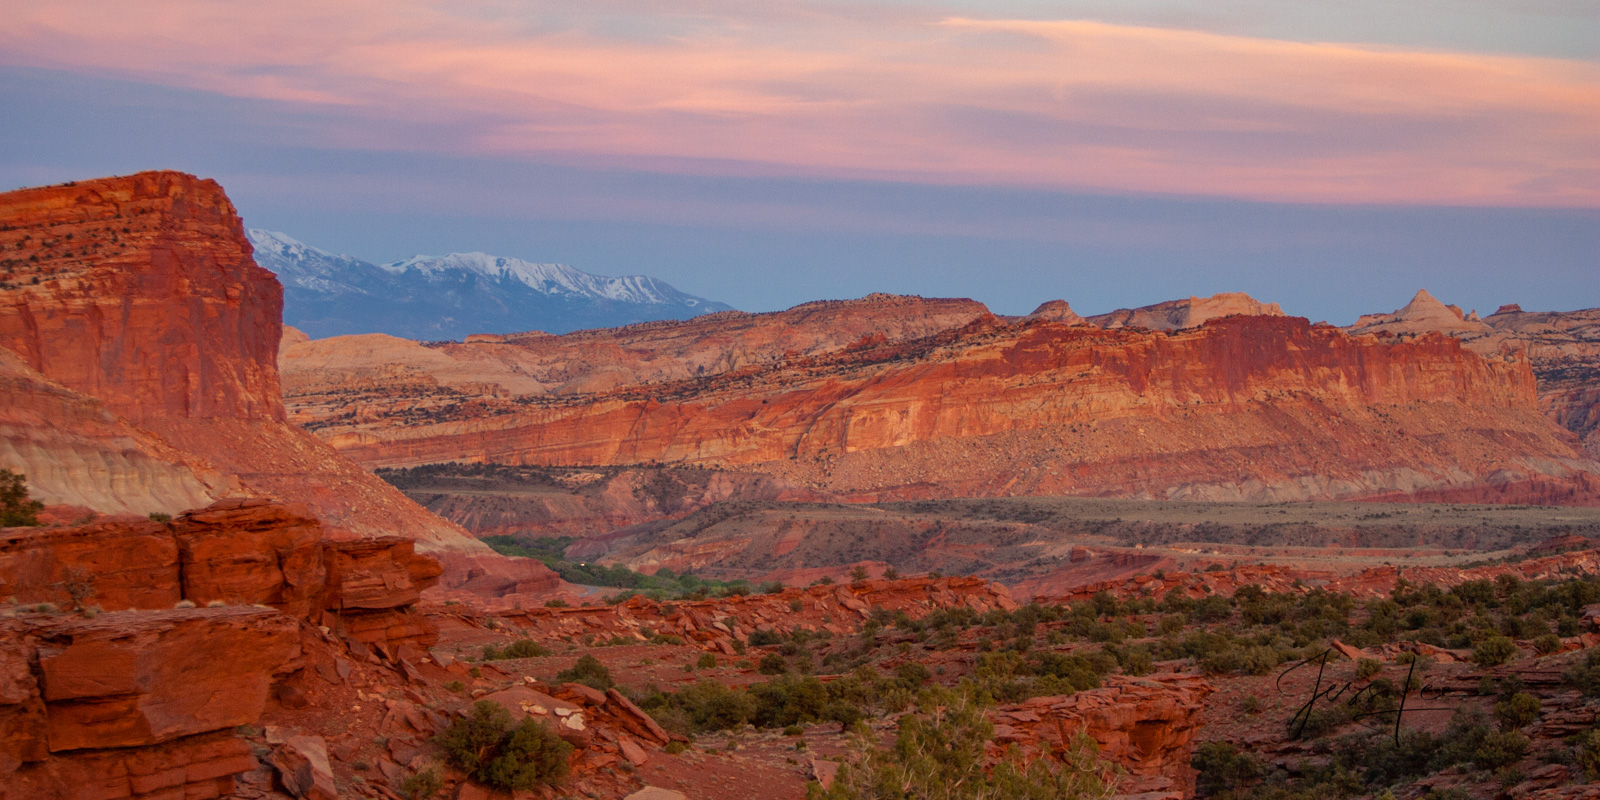 Never Ending a Limited Edition of 50 Fine Art Prints Capitol Reef, San Rafael Swell and the Waterpocket Fold are some of the...